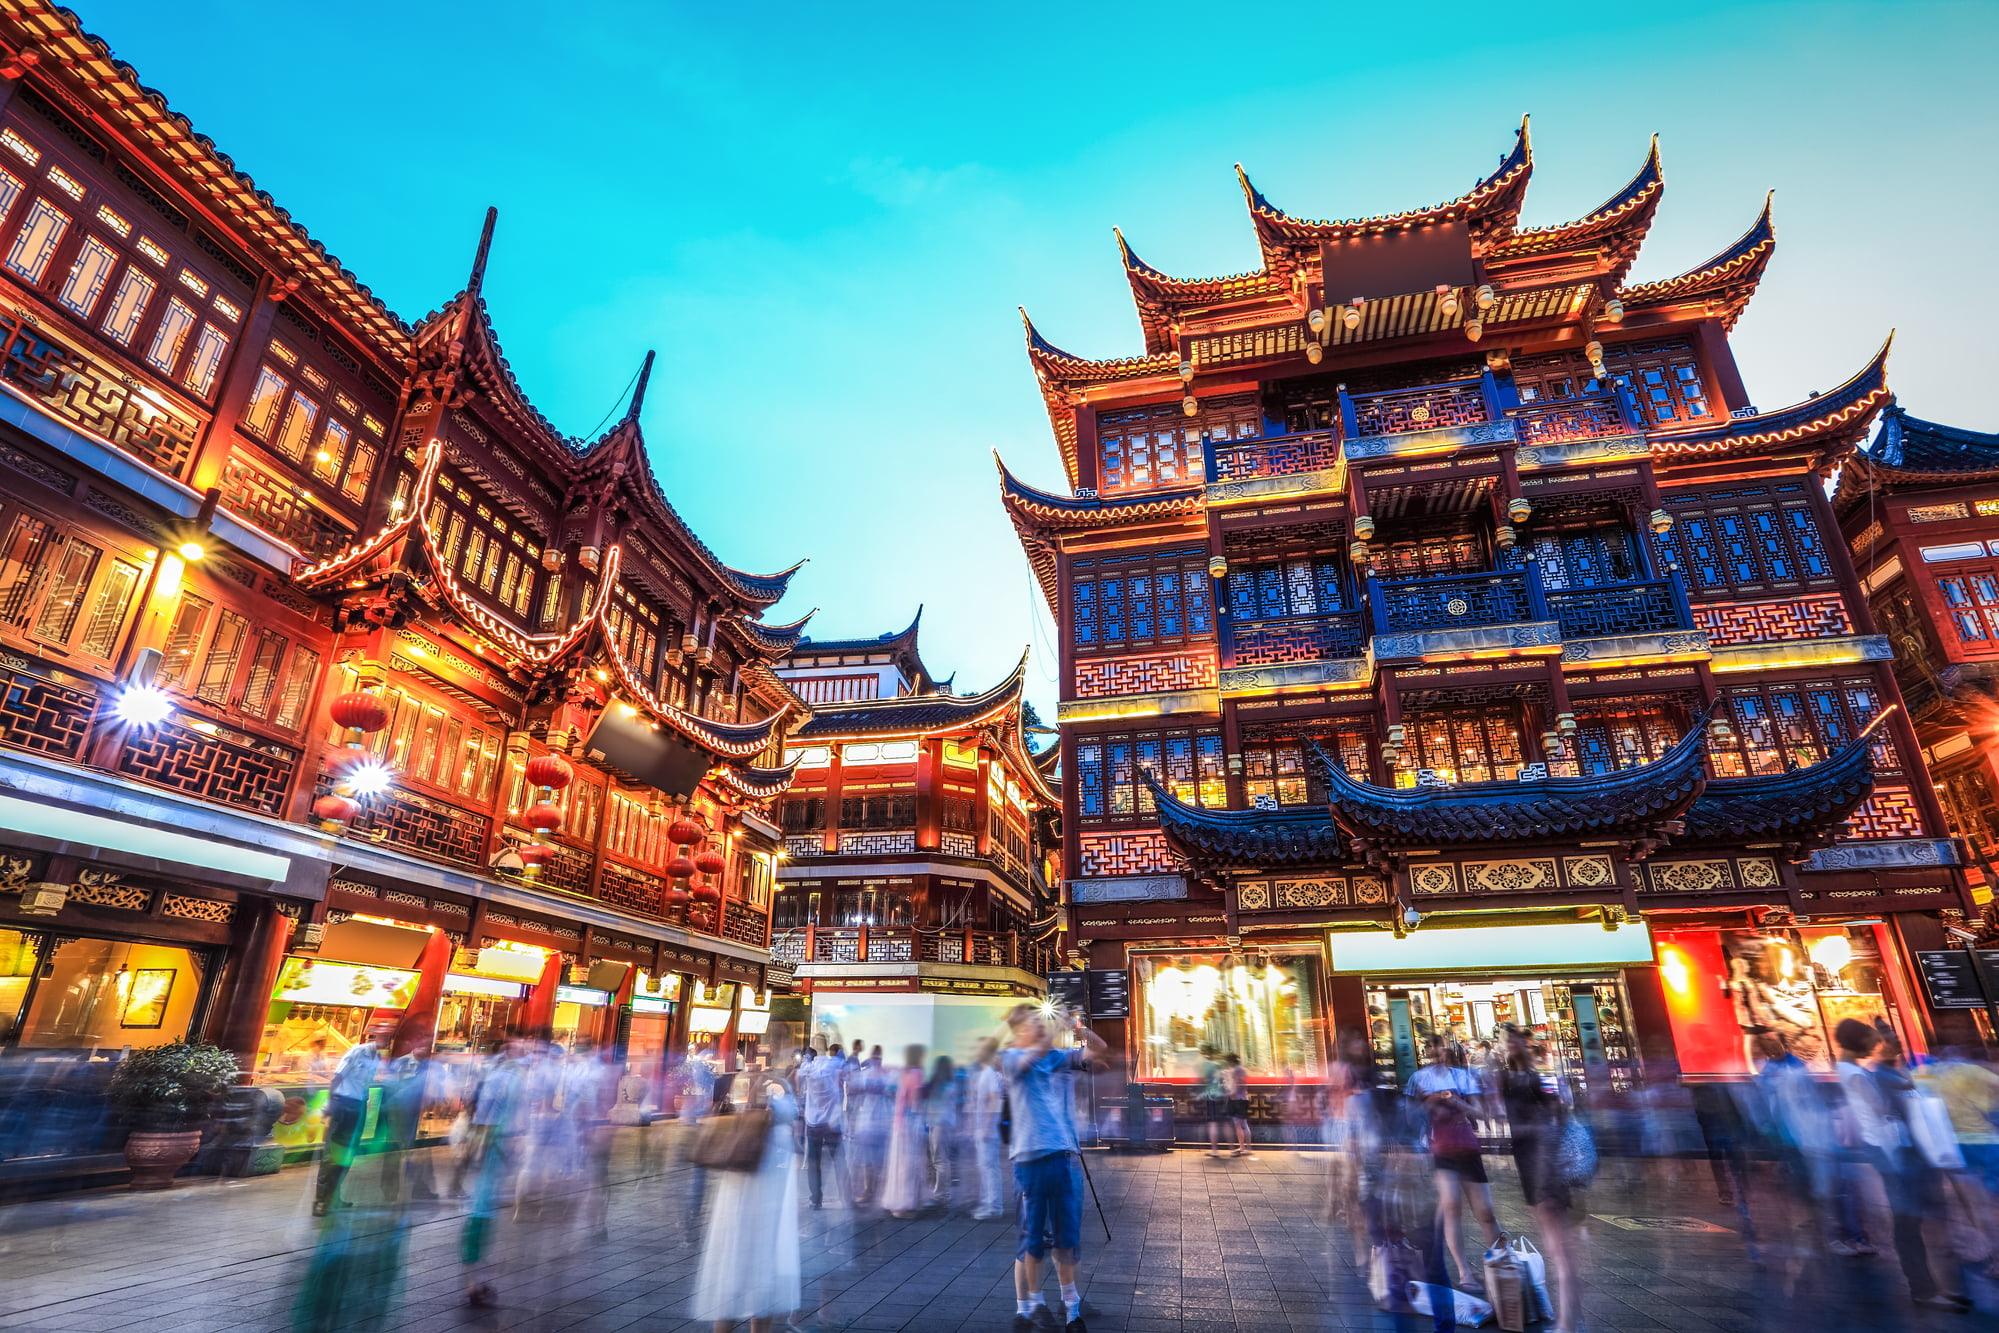 Even After Going Parabolic, Ethereum DeFi Tokens Have Room to Grow in China